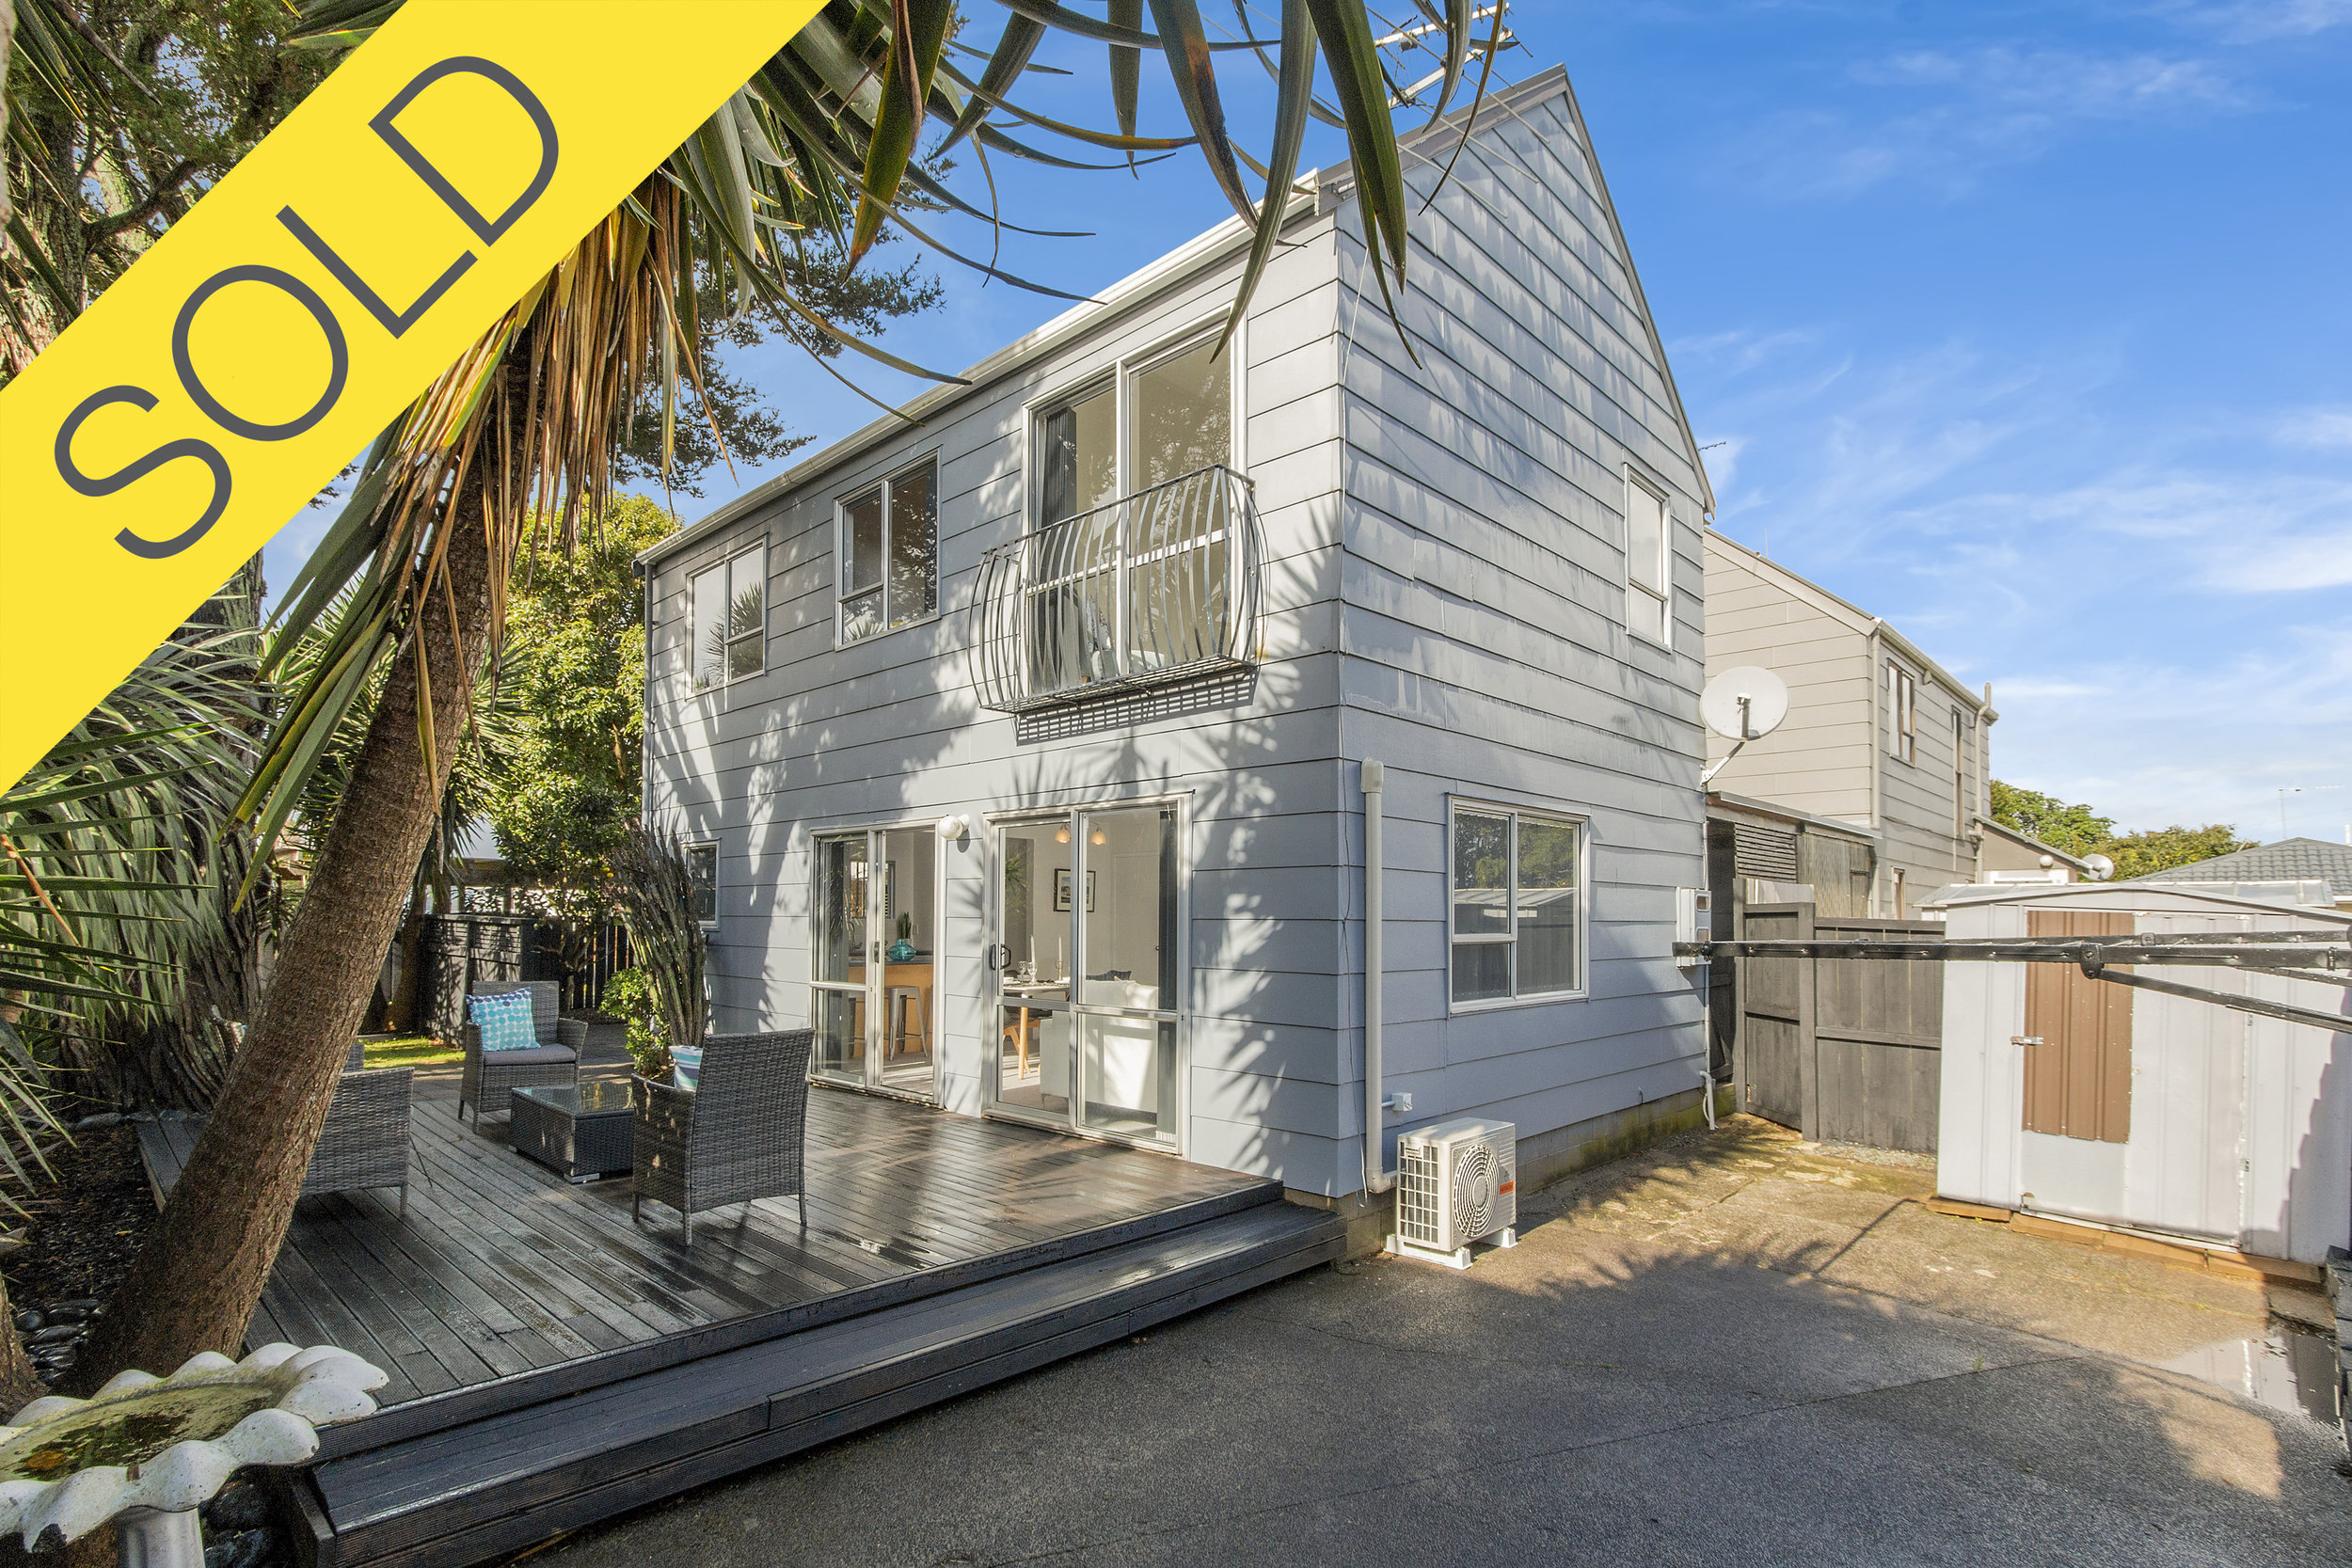 8/67A Spring Street, Onehunga, Auckland - SOLD JULY 20183 Beds | 1 Bath | 2 Parking